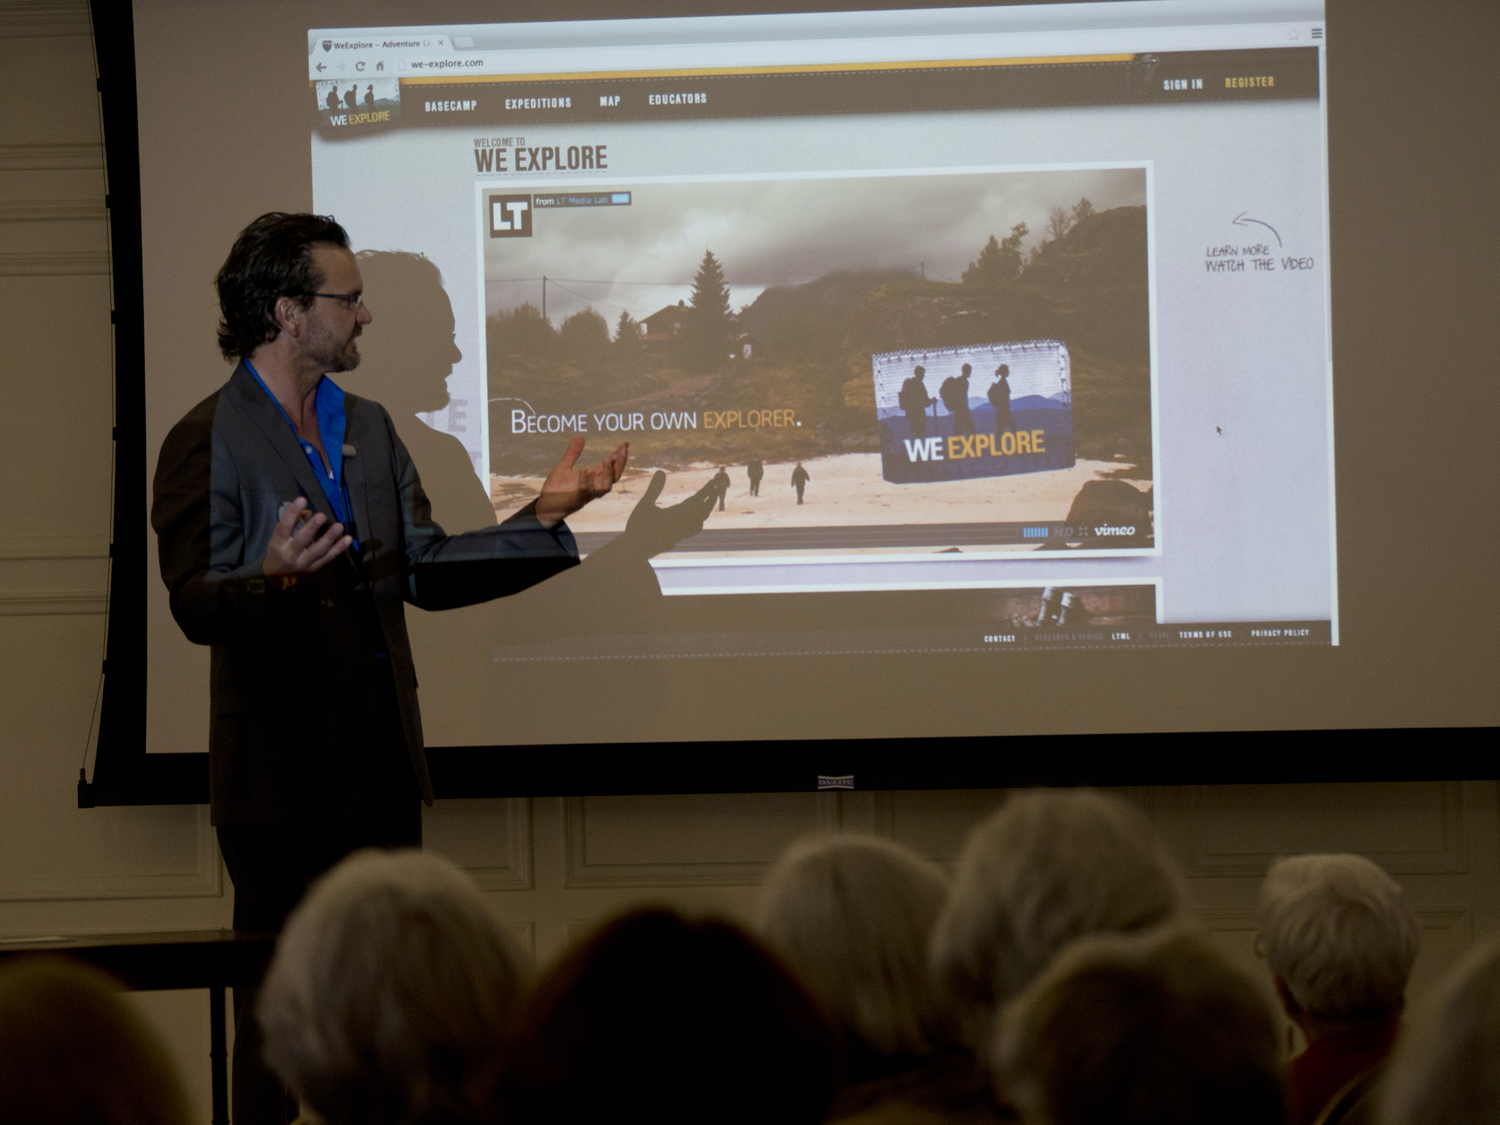 Aaron showcasing the WeExplore online learning environment